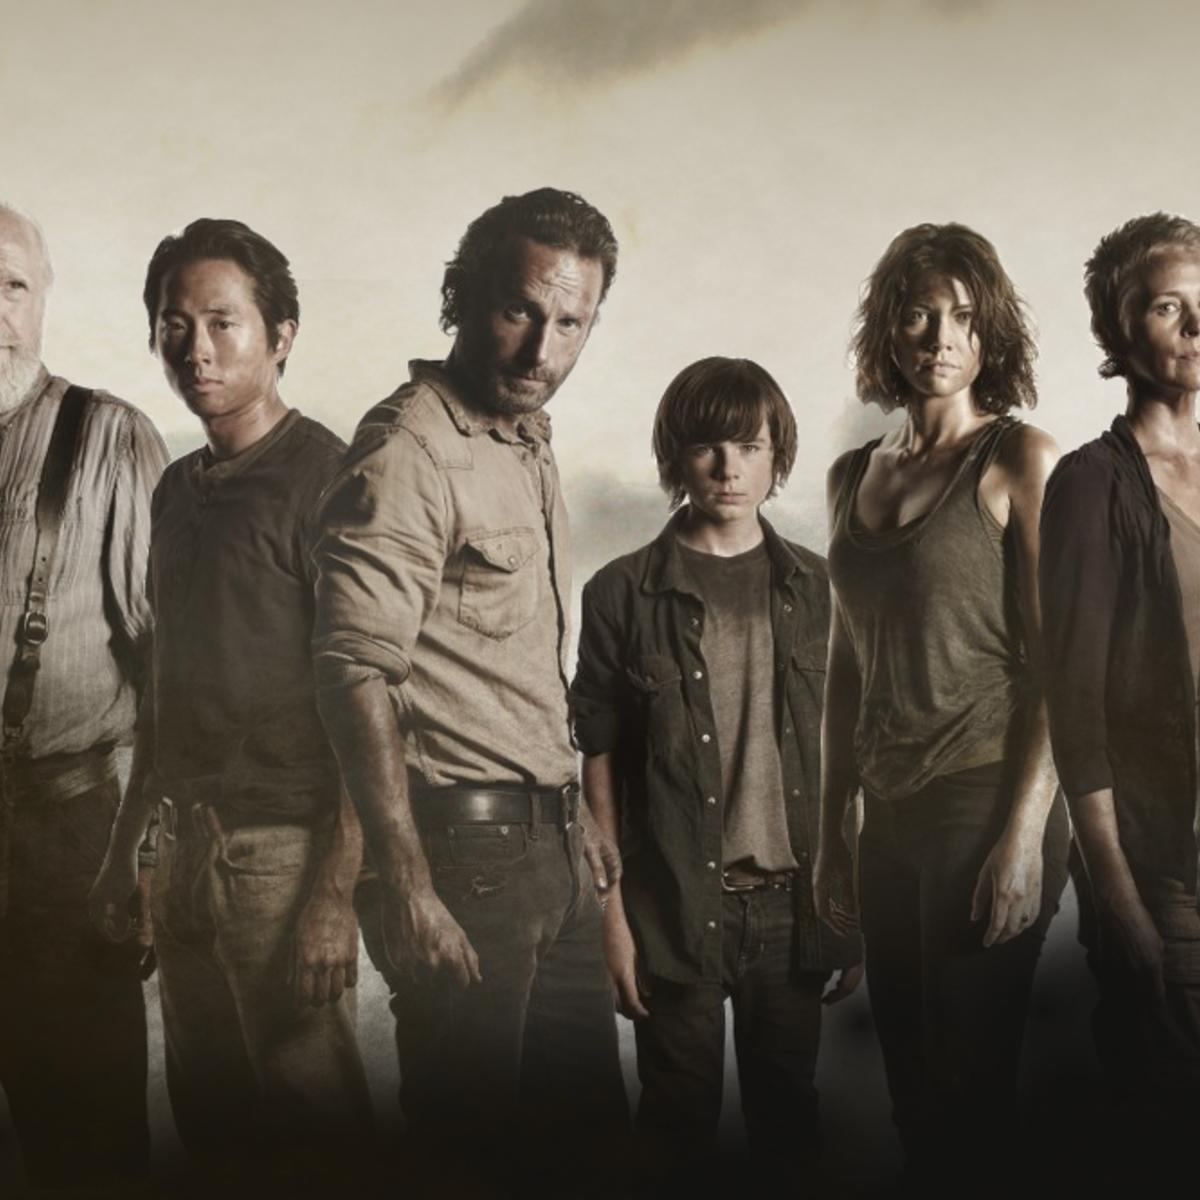 SEASON-4-COMPLETE-CAST-POSTER-The-Walking-Dead-the-walking-dead-35777405-2528-670_0.png